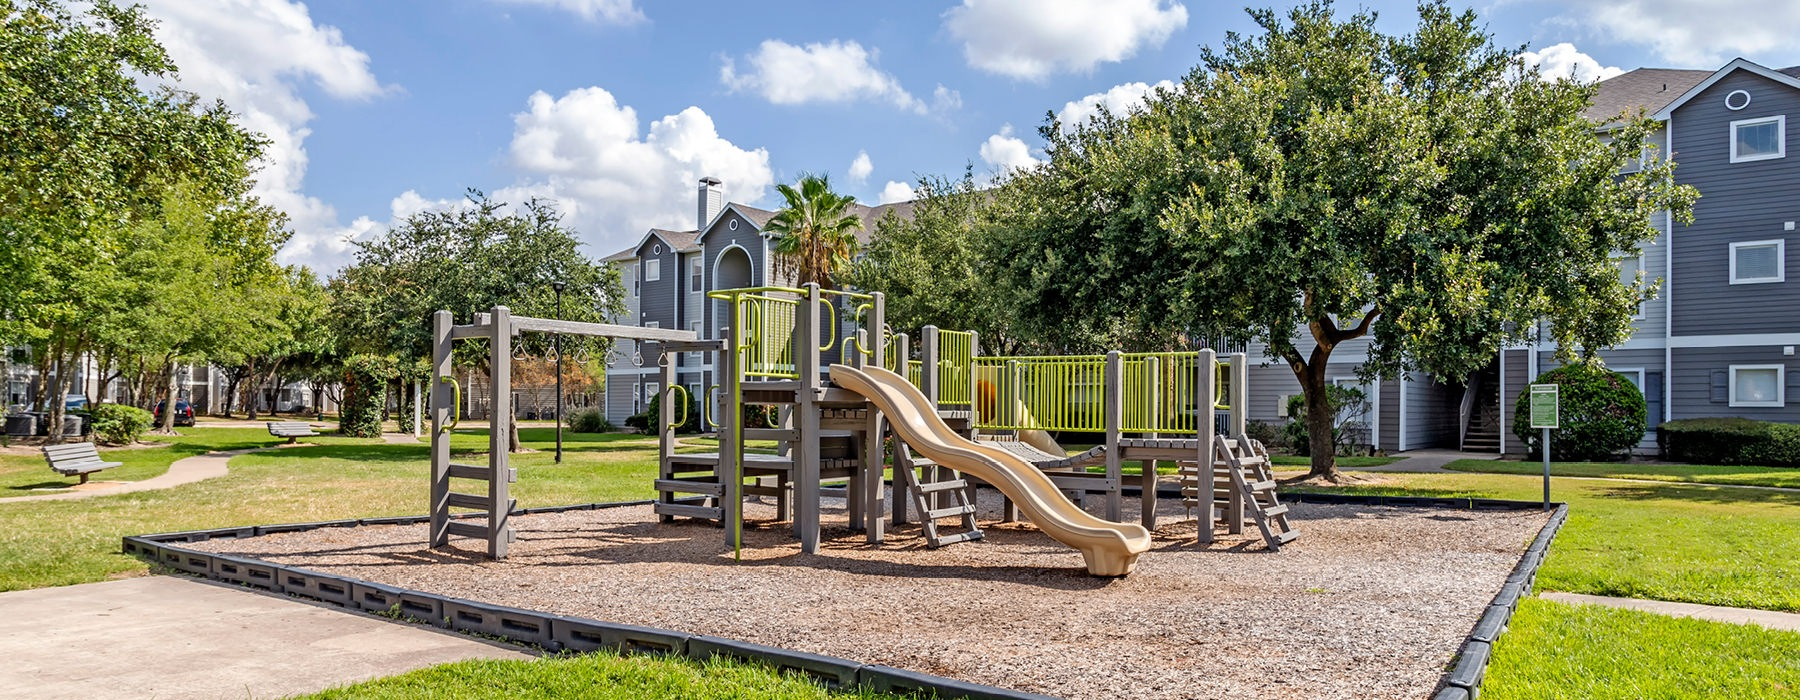 Large playground with wood chip ground.